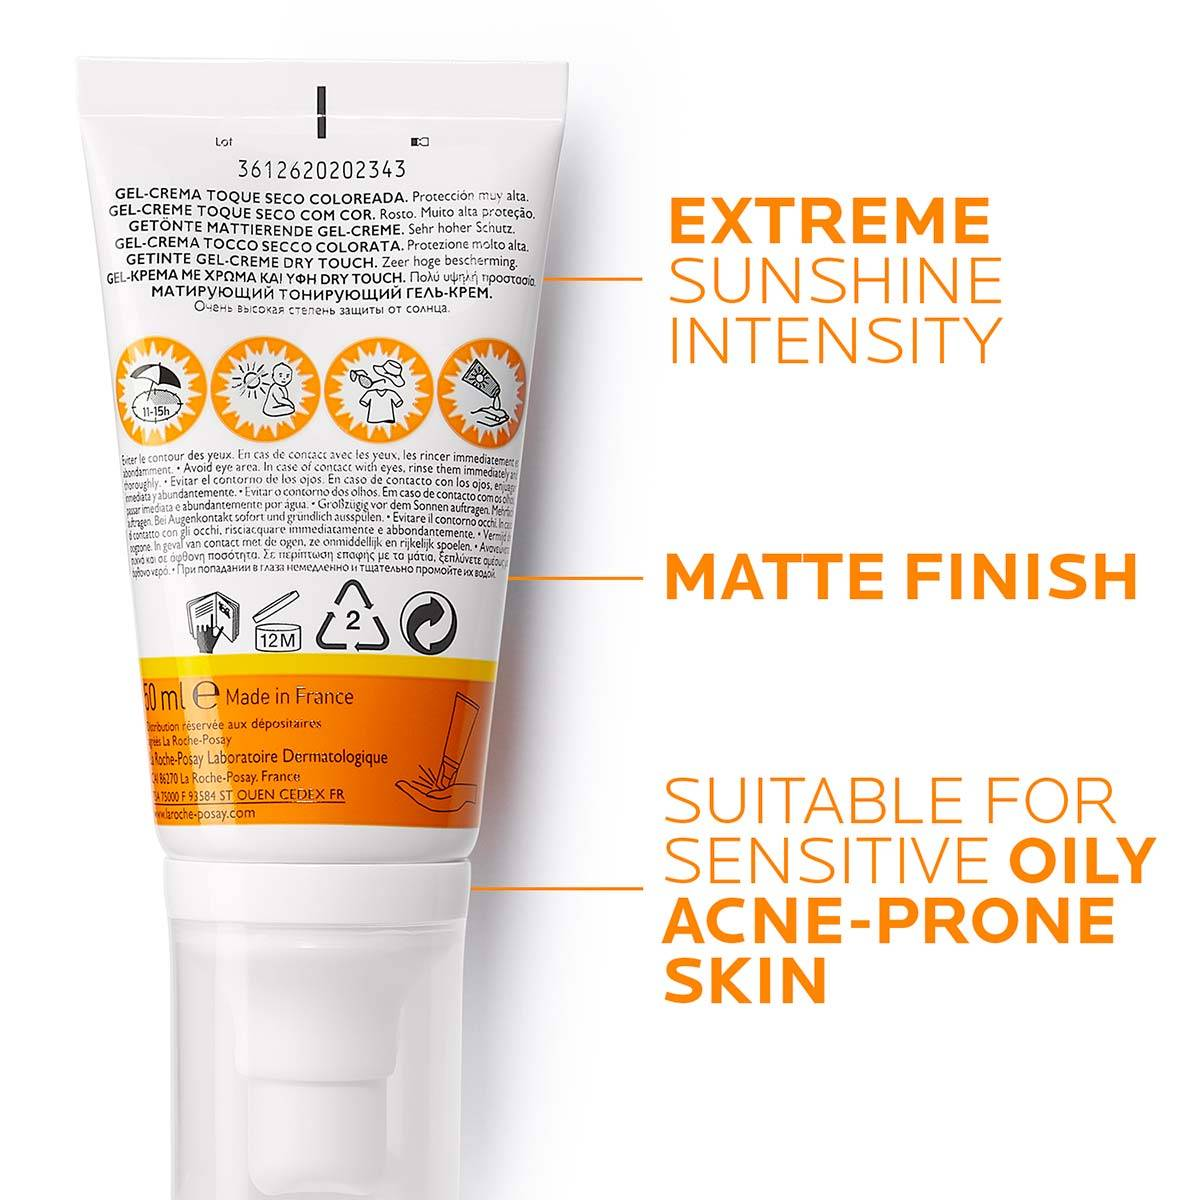 La Roche Posay ProductPage Sun Anthelios XL Tinted Dry Touch Spf50 50m